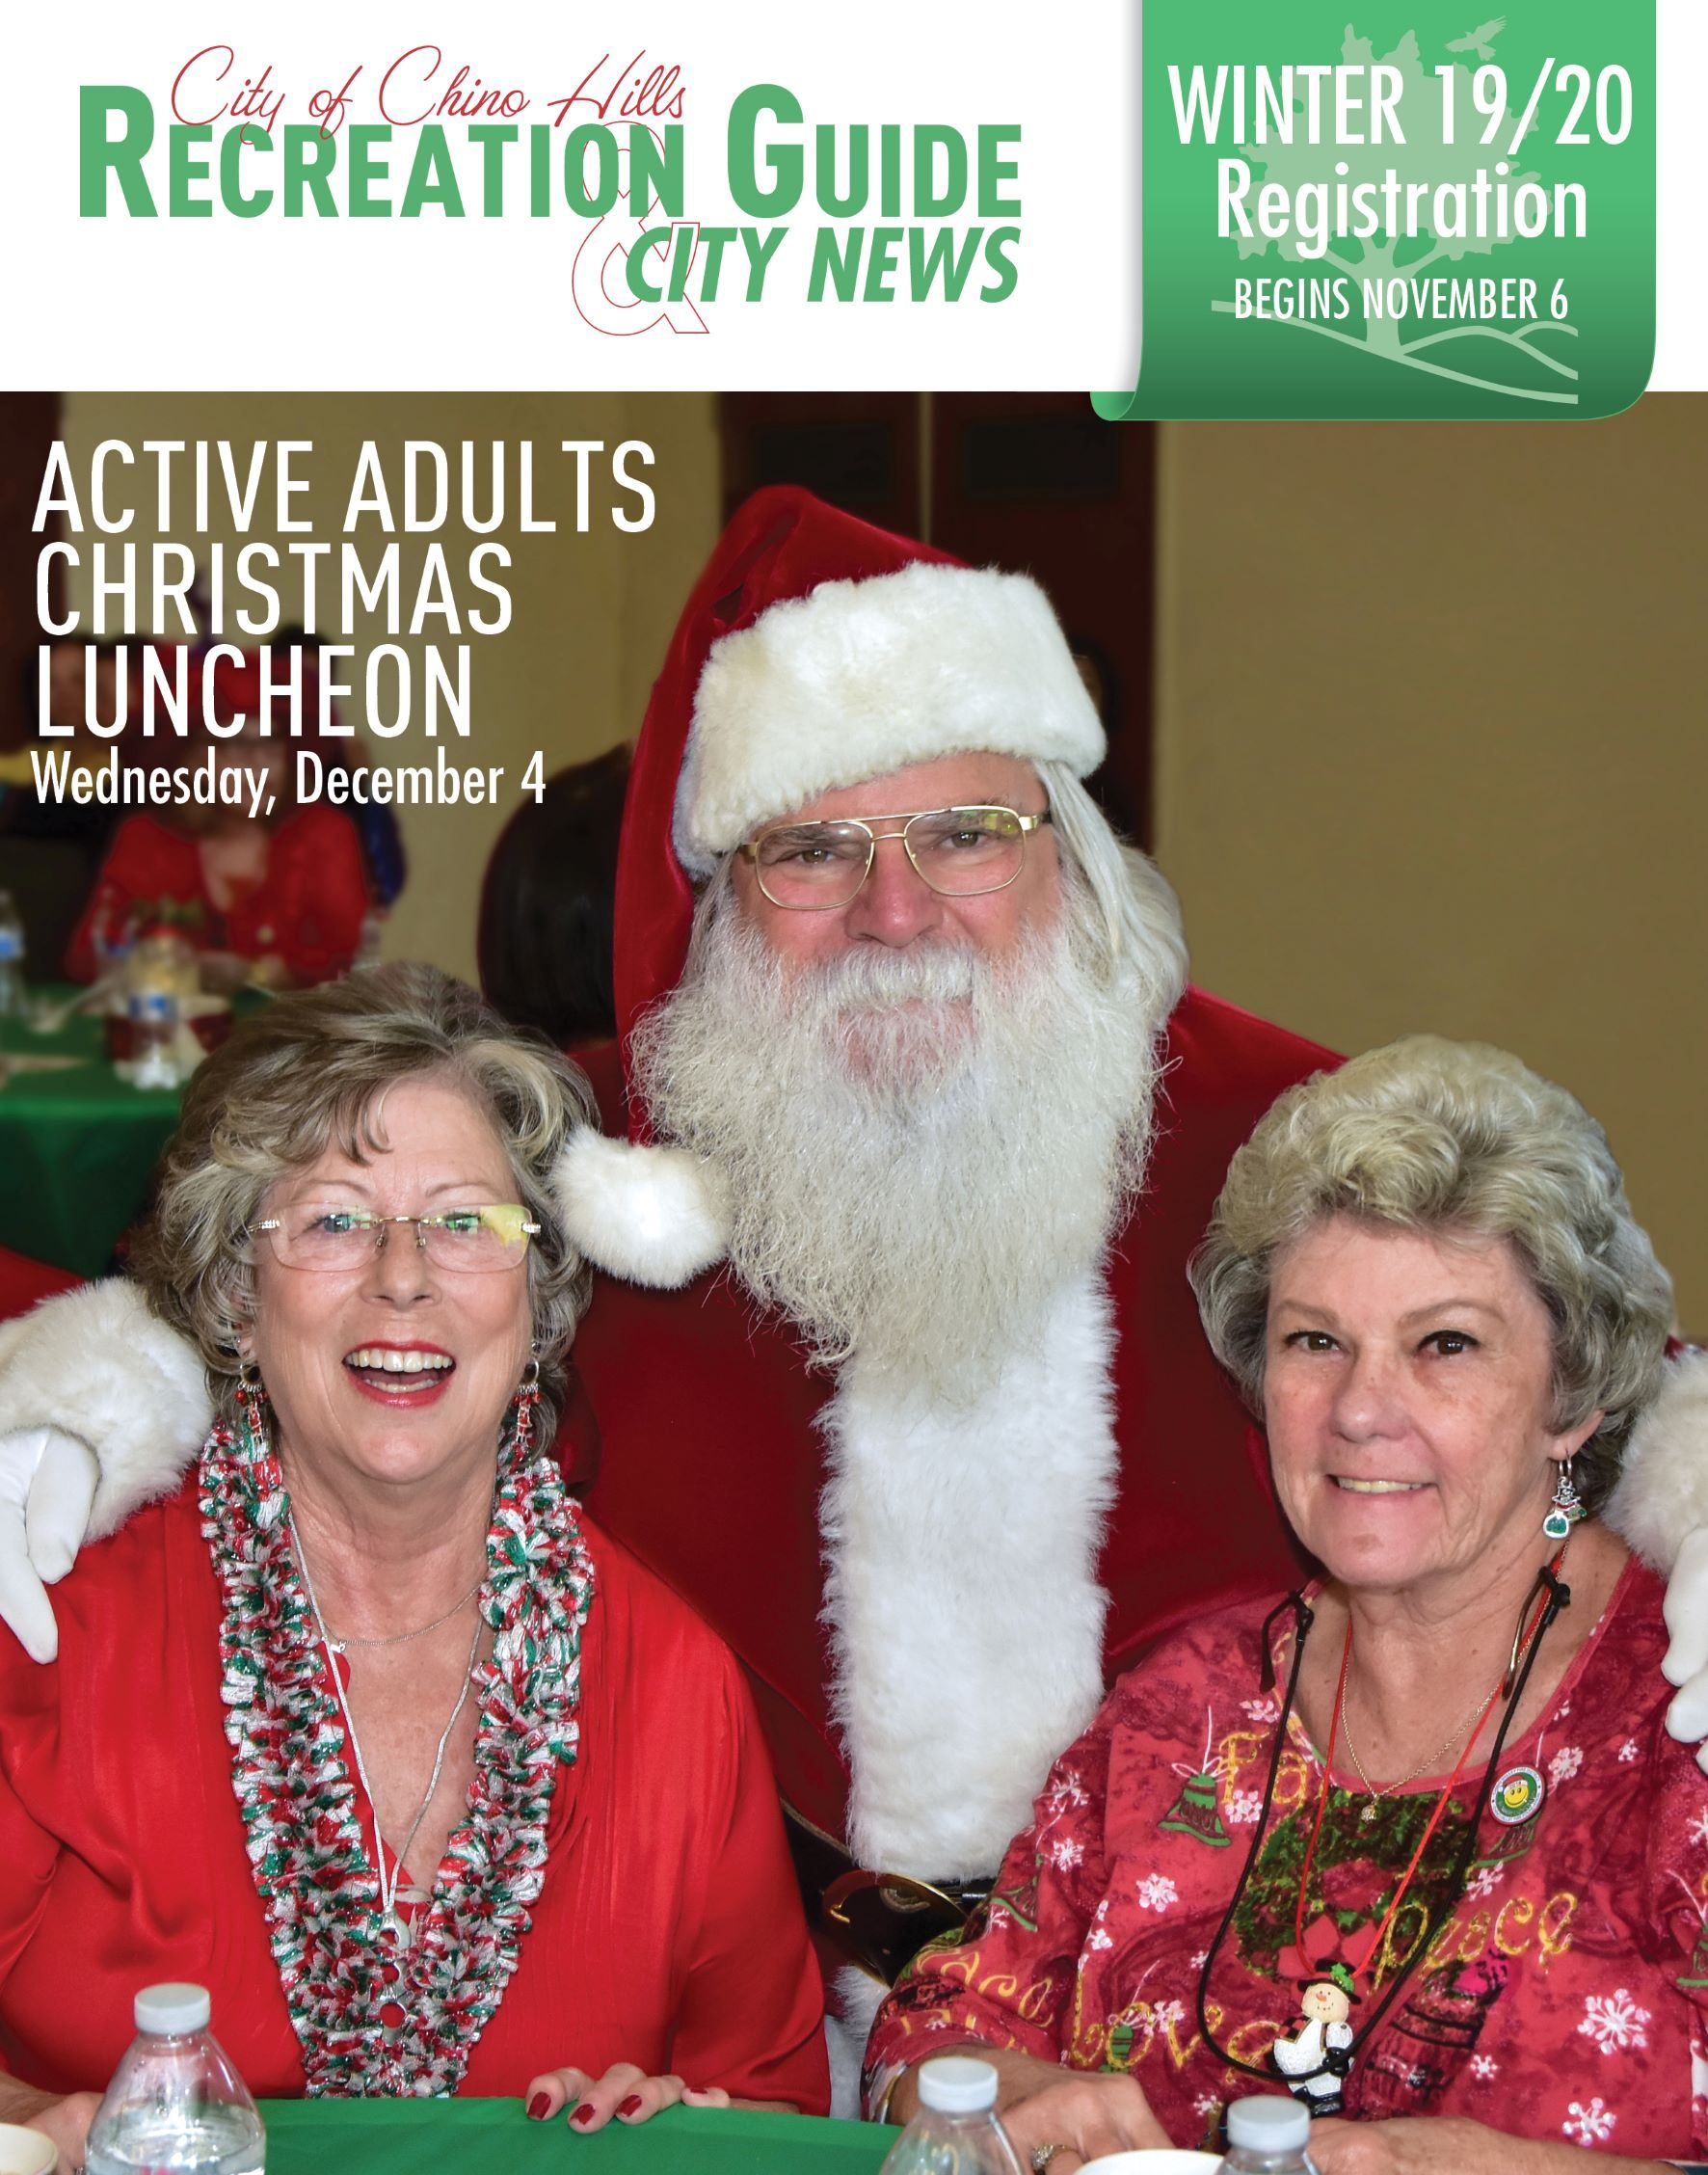 City of Chino Hills Recreation Guide and City News  Opens in new window